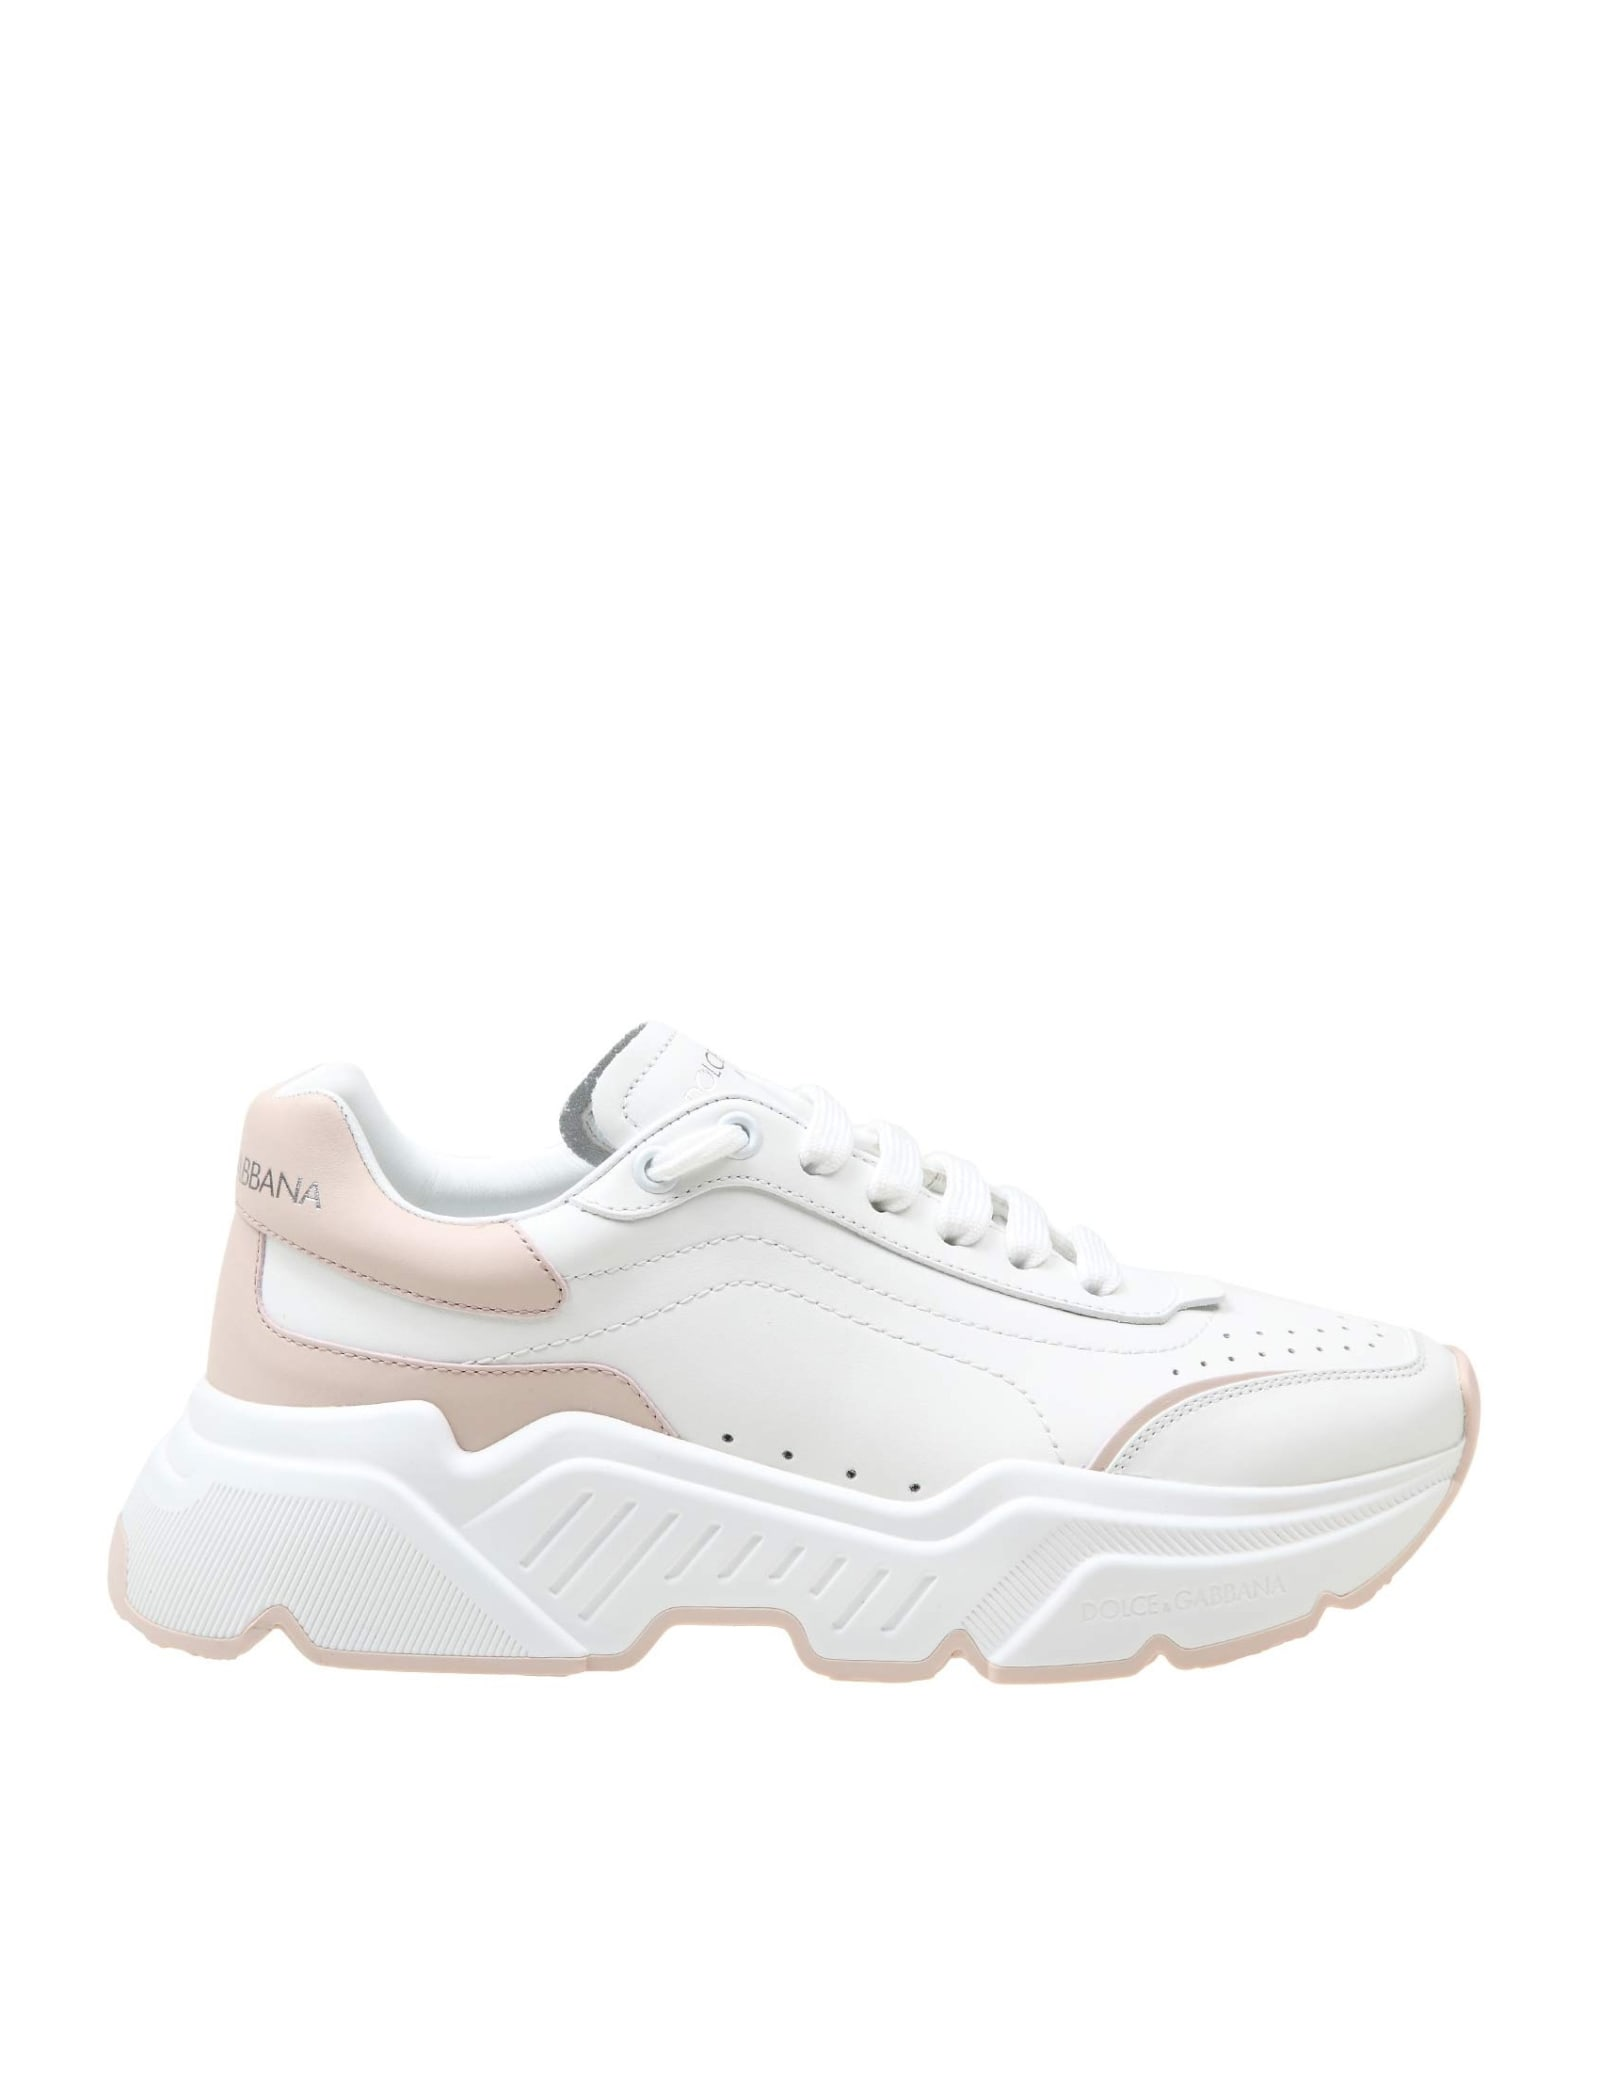 Dolce & Gabbana DAYMASTER SNEAKERS IN WHITE / PINK LEATHER